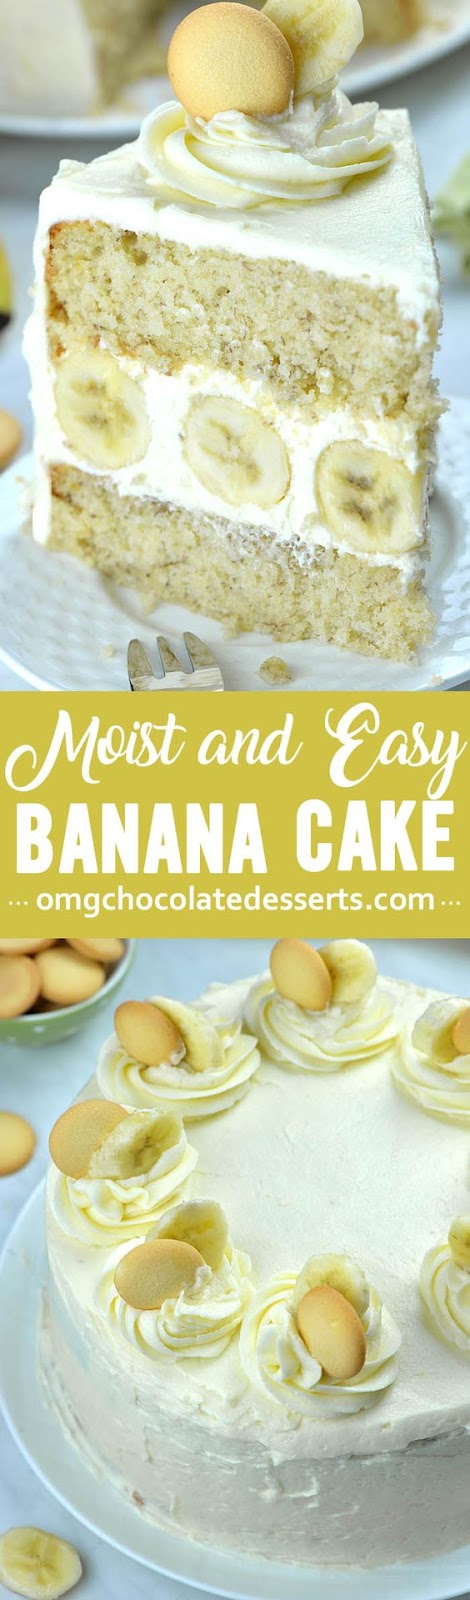 You will love this incredibly moist and easy Banana Cake with rich and fluffy Cream Cheese Frosting! Layered banana cake with addition of whipped cream